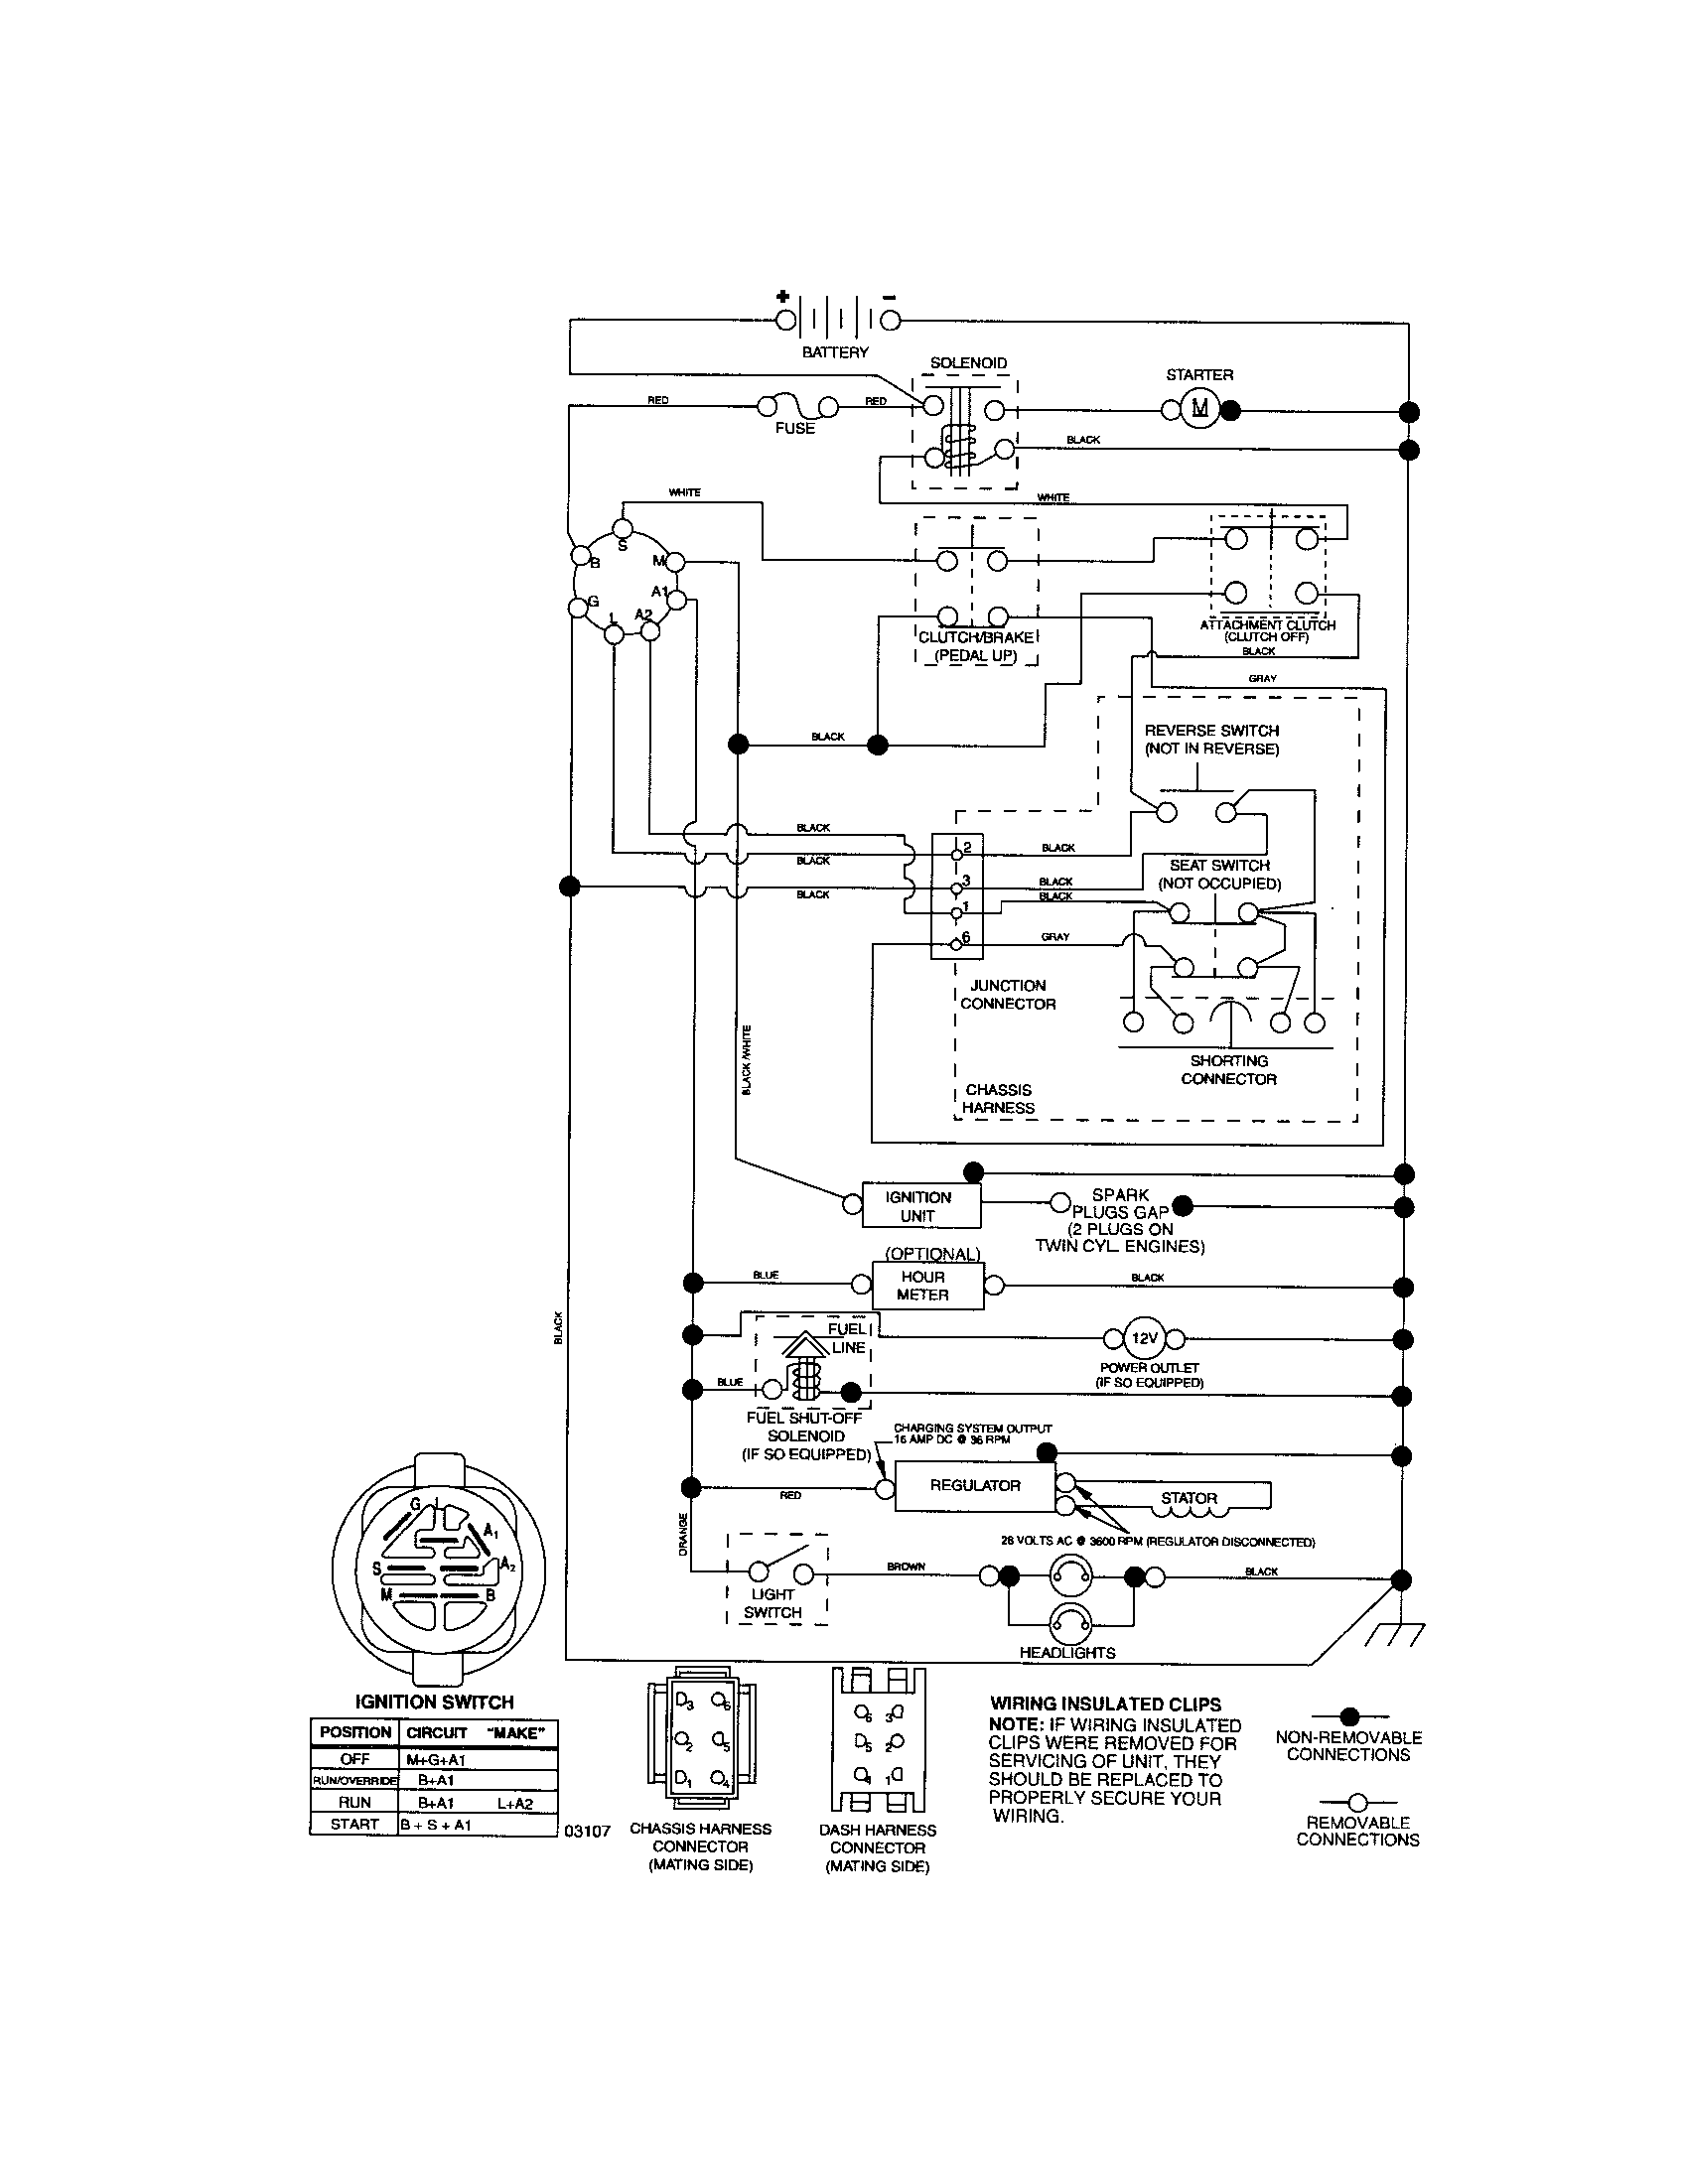 6af5f1447fd13c8443376822ddc1e105 craftsman riding mower electrical diagram wiring diagram Universal Wiring Harness Diagram at eliteediting.co